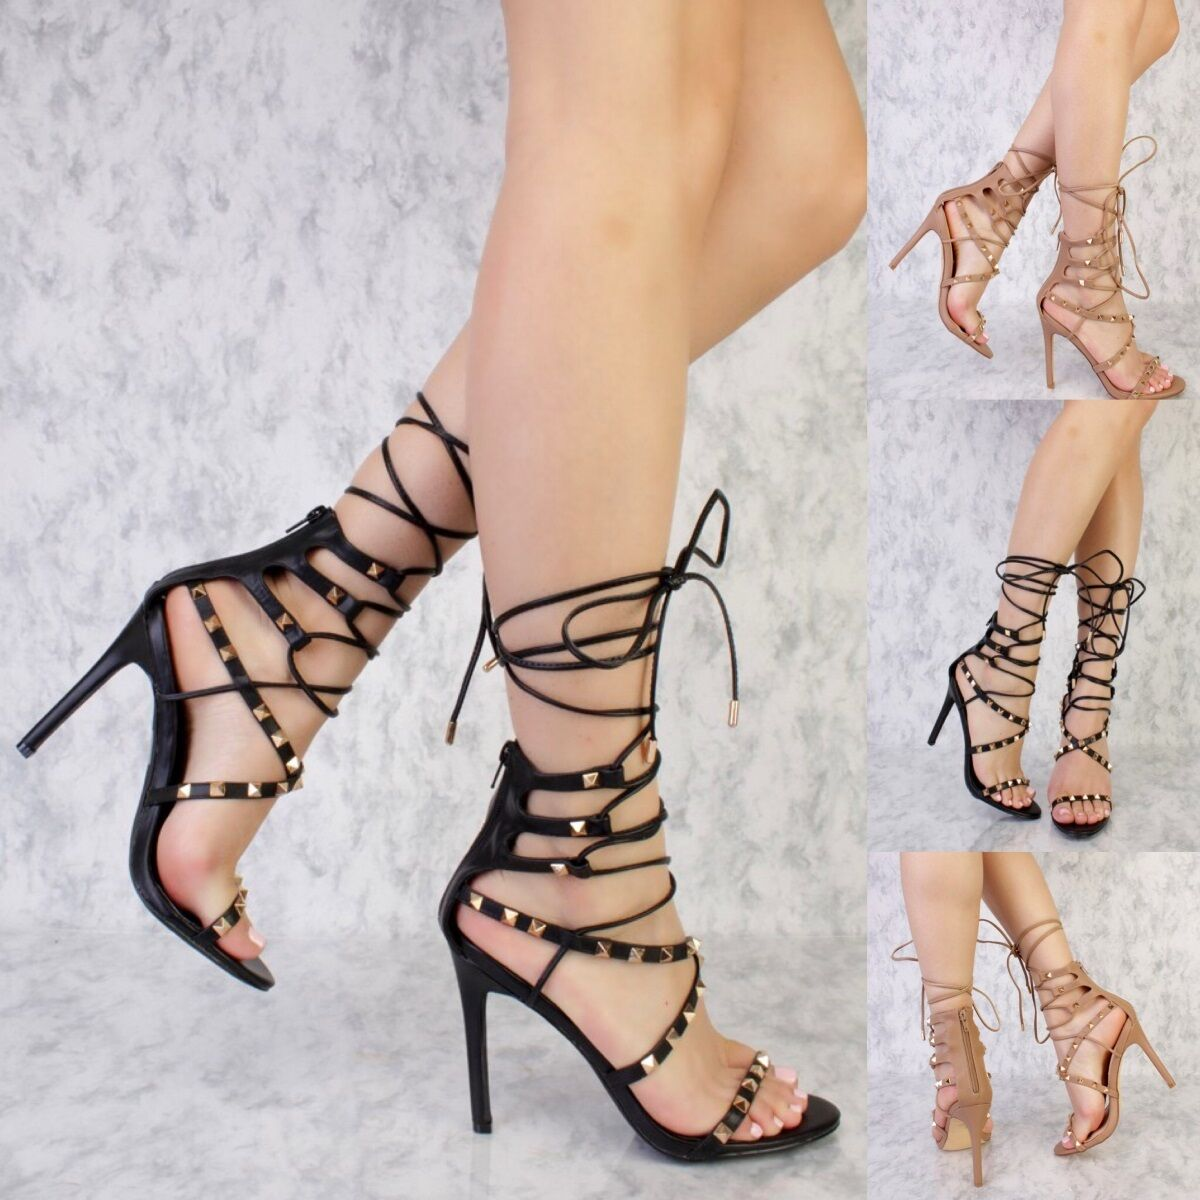 Studded Lace Up Stiletto High Heel Open Toe mid Calf Gladiator Sandals Size G15